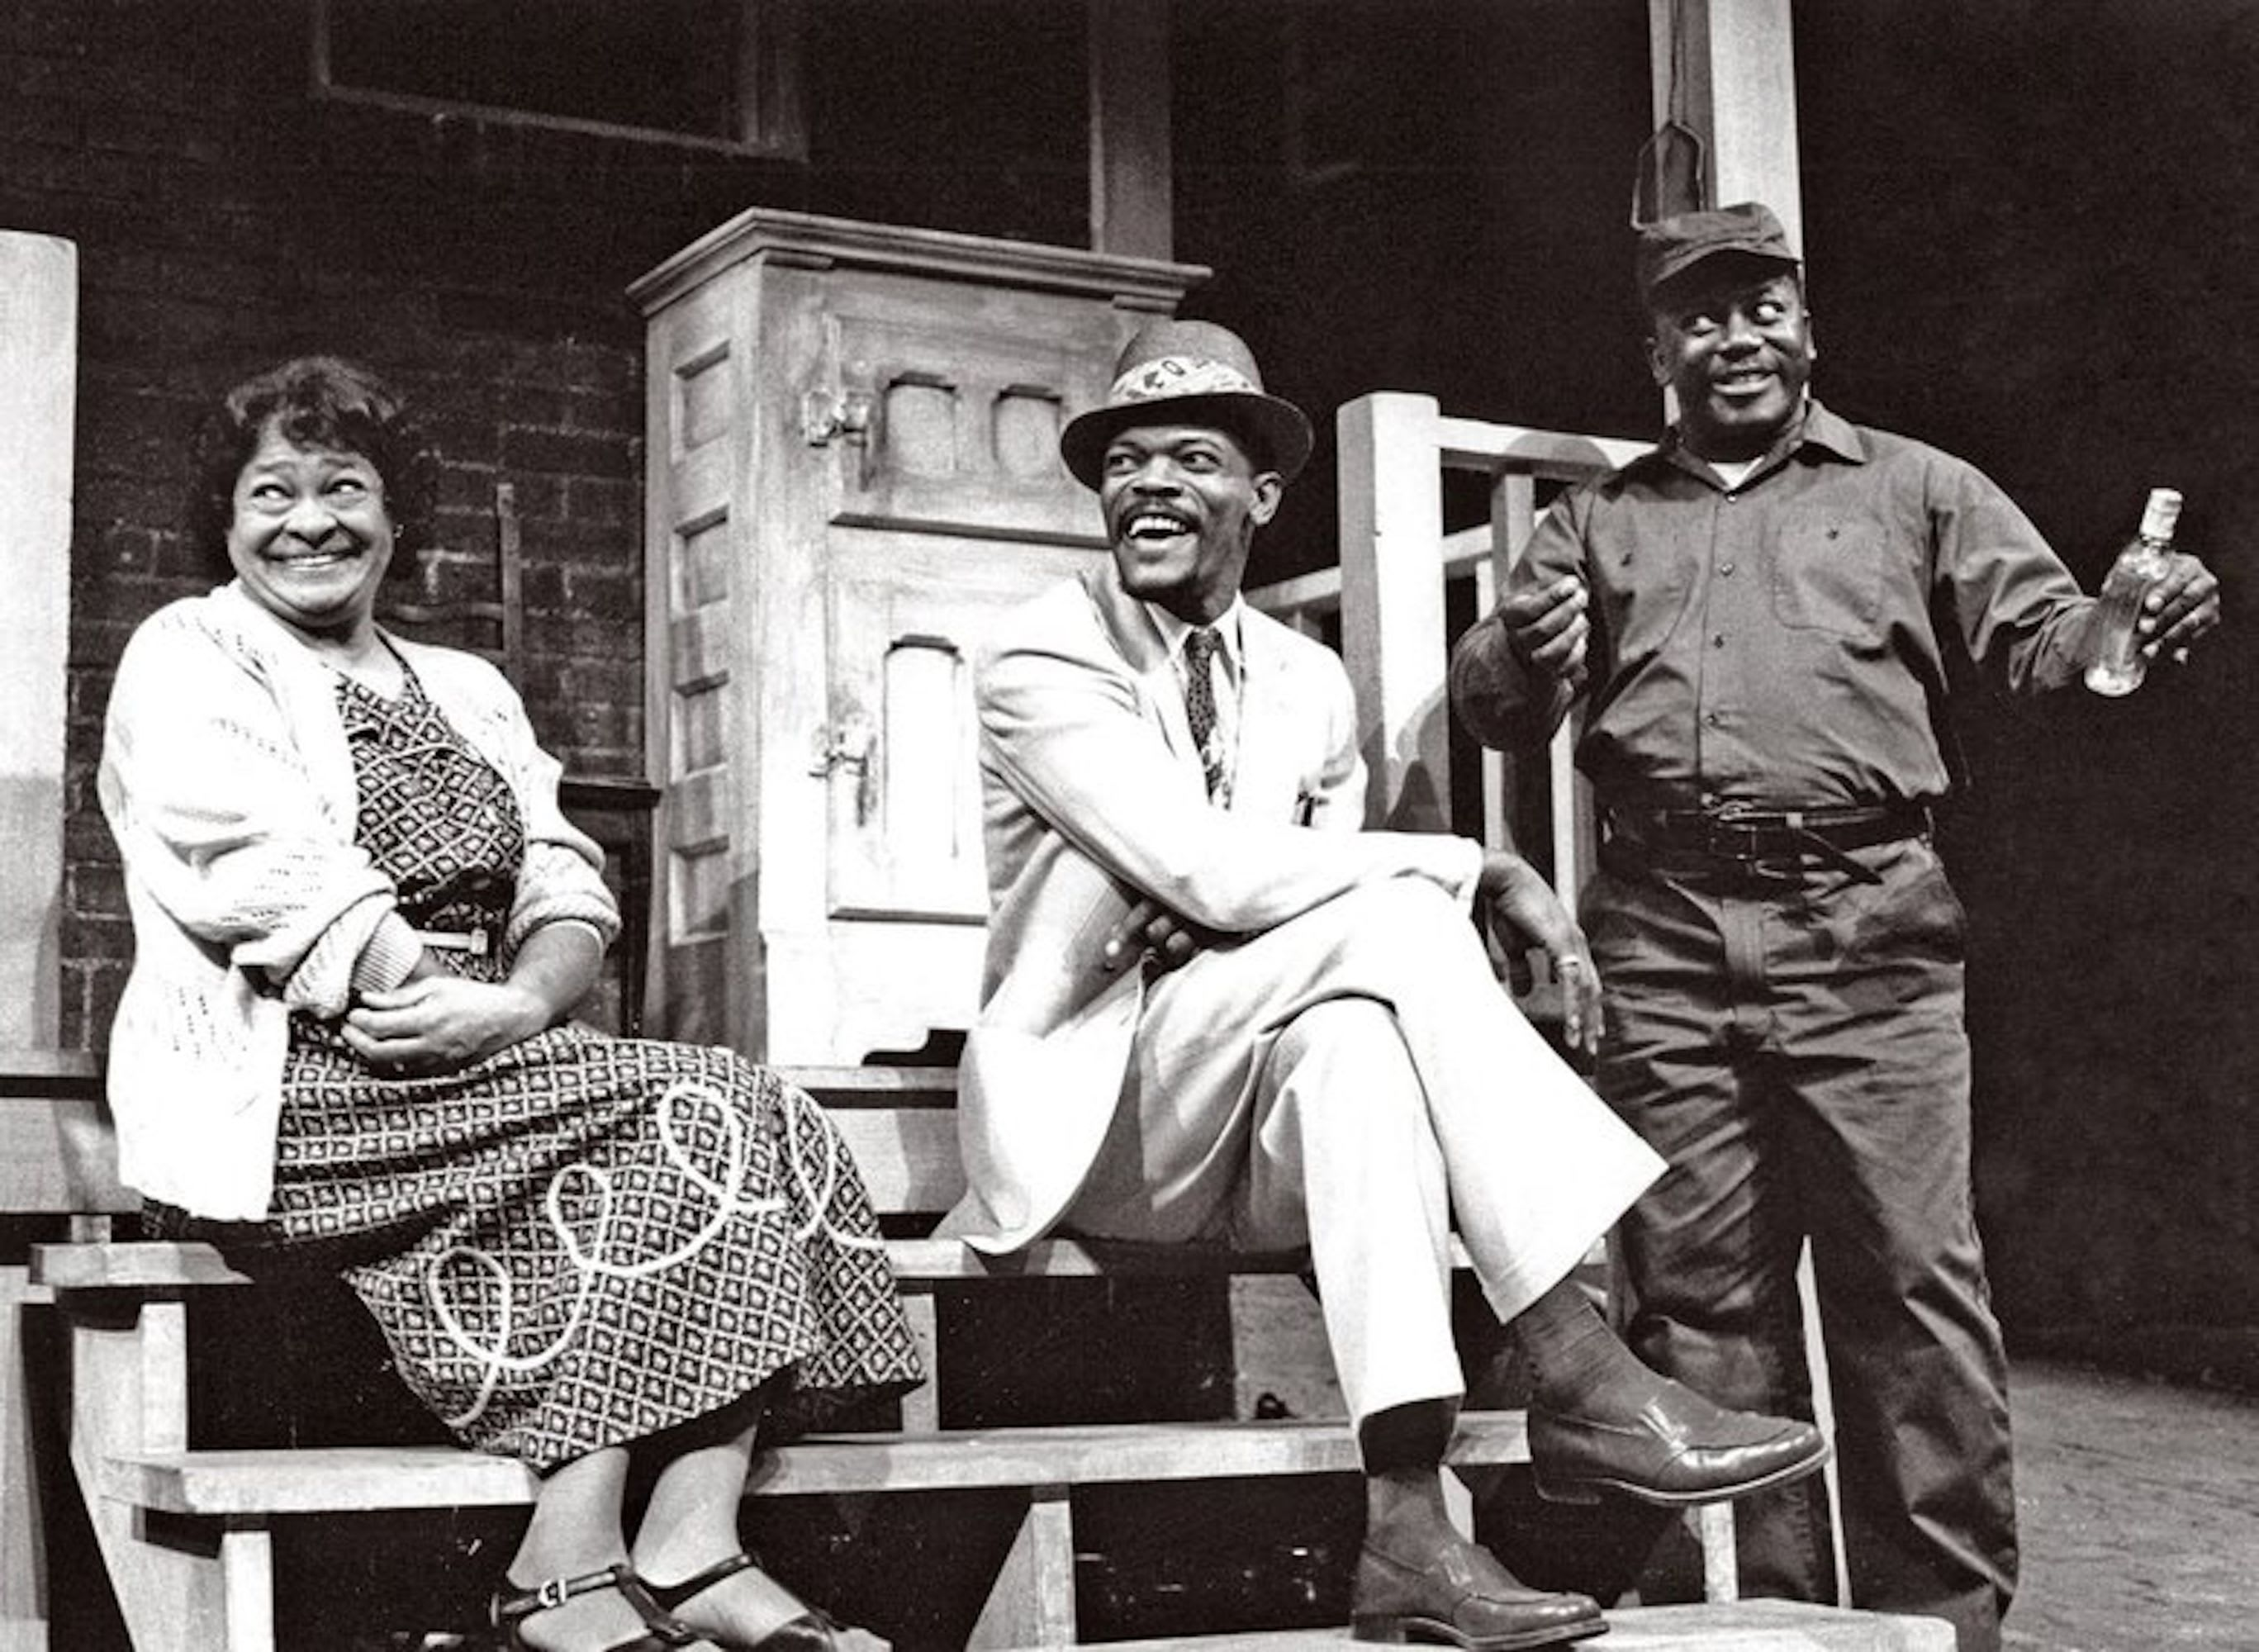 LowresFrances Foster Samuel L Jackson and Robert Colston in Fences 1986 w930kq